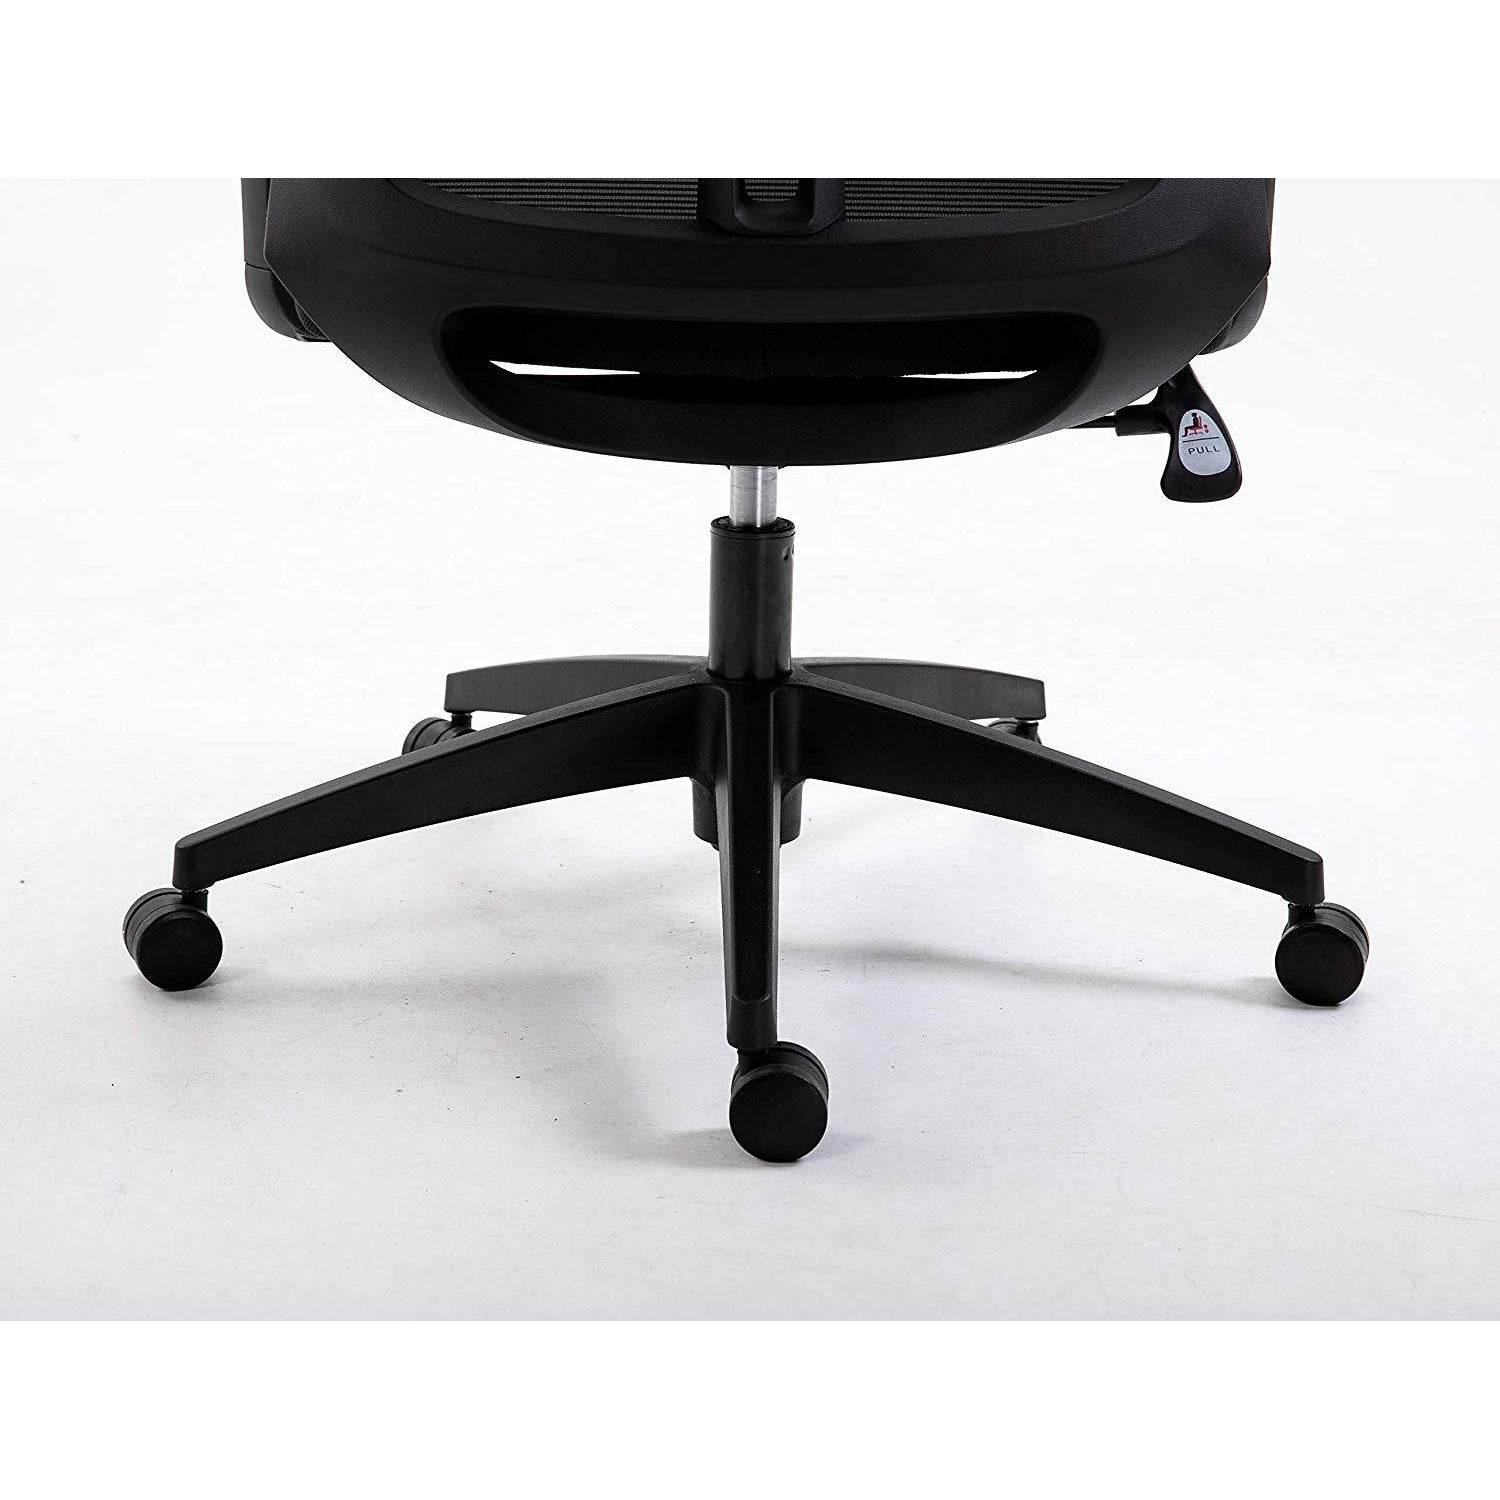 Picture of: Cherry Tree Furniture Mesh Fabric Desk Chair Office Chair With Adjustable Armrests Lumbar Support Black With Headrest Shop Designer Home Furnishings